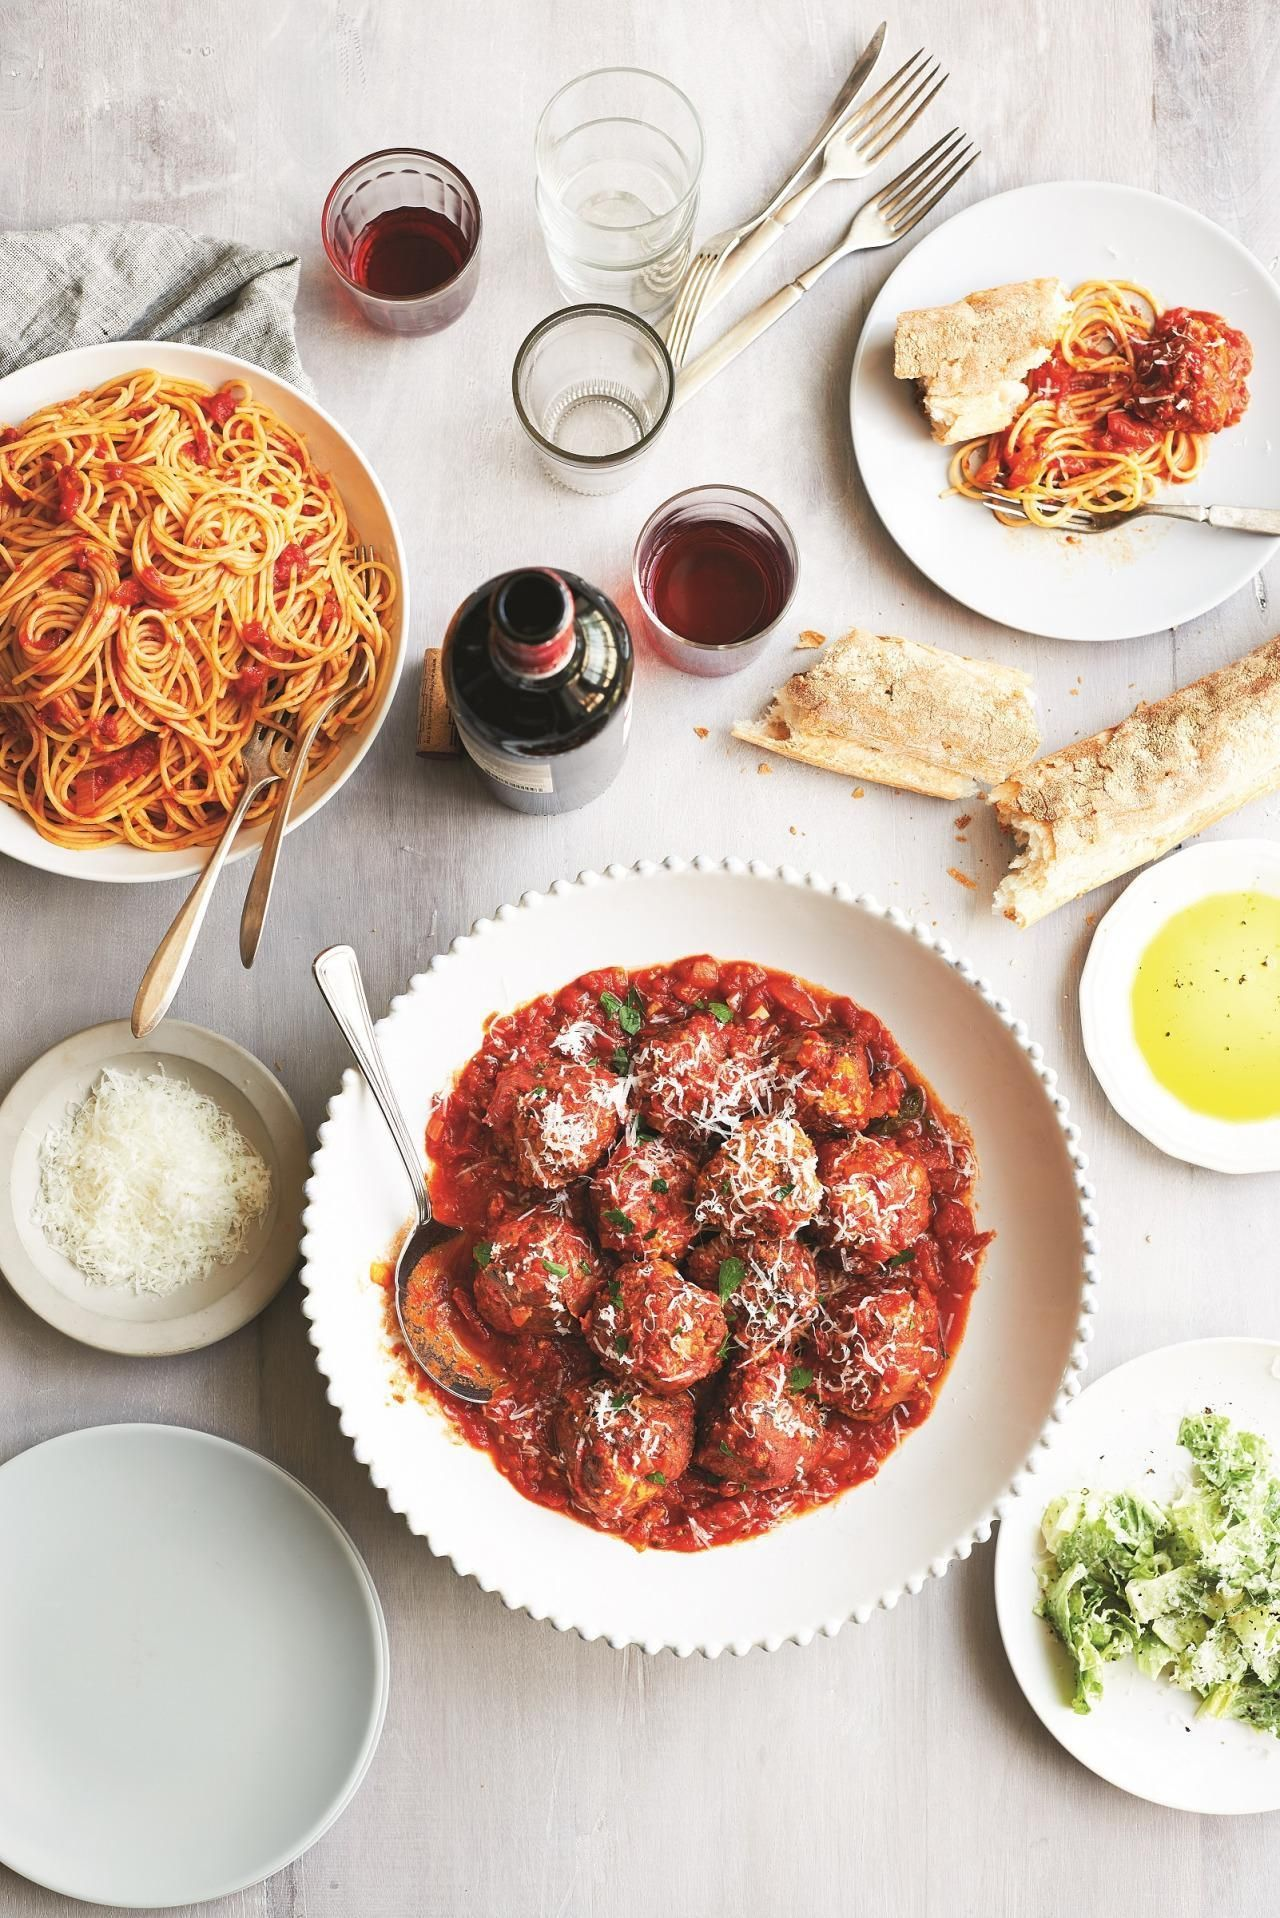 Italian meatballs new jersey style from the chef next door this crowd pleasing recipe comes from the chef next door a pro chefs recipes forumfinder Image collections